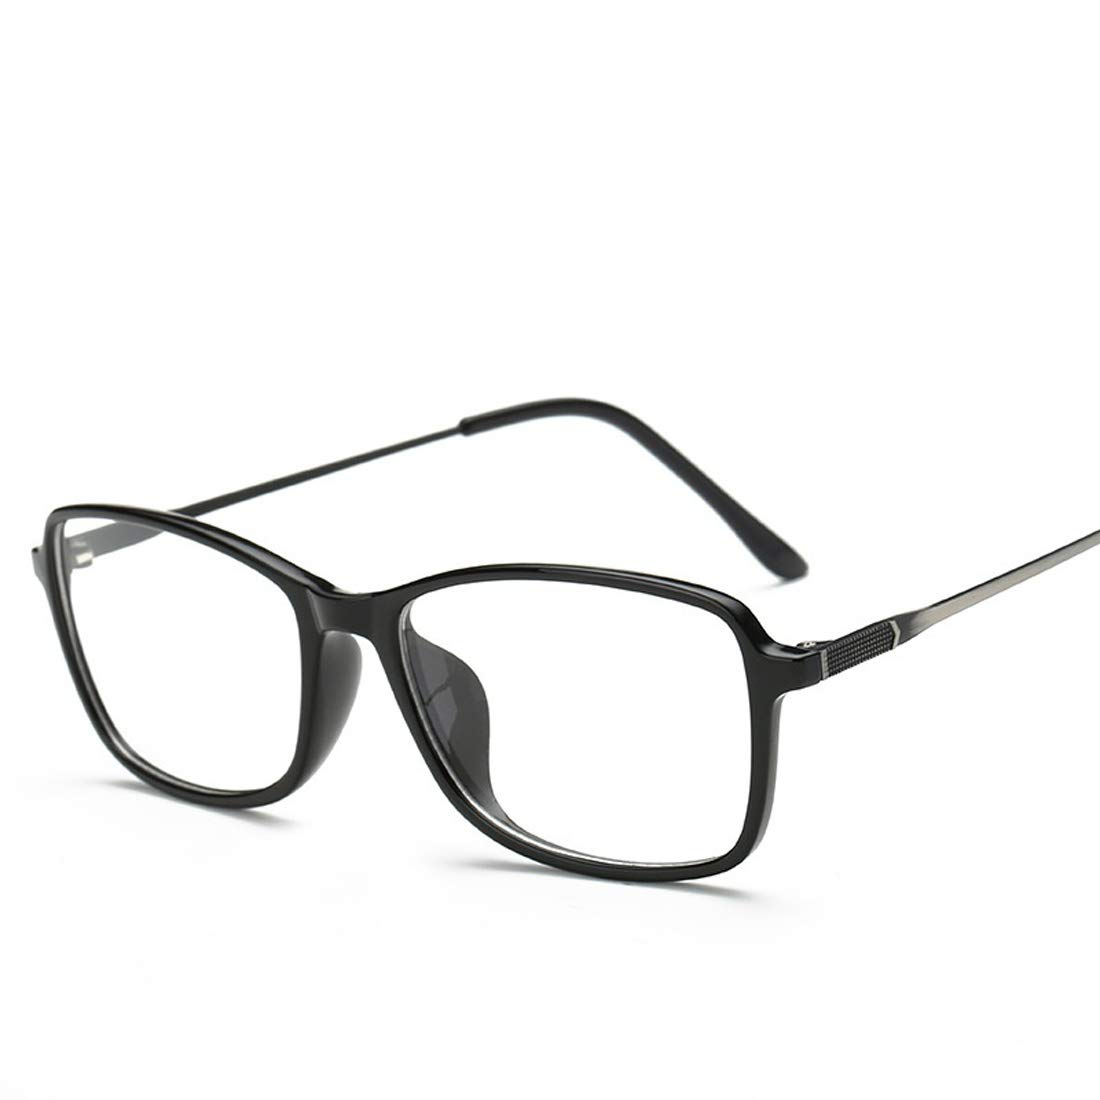 Wsunglass Retro men and women TR90 general myopia glasses trend same glasses frame tail cargo processing plain mirror